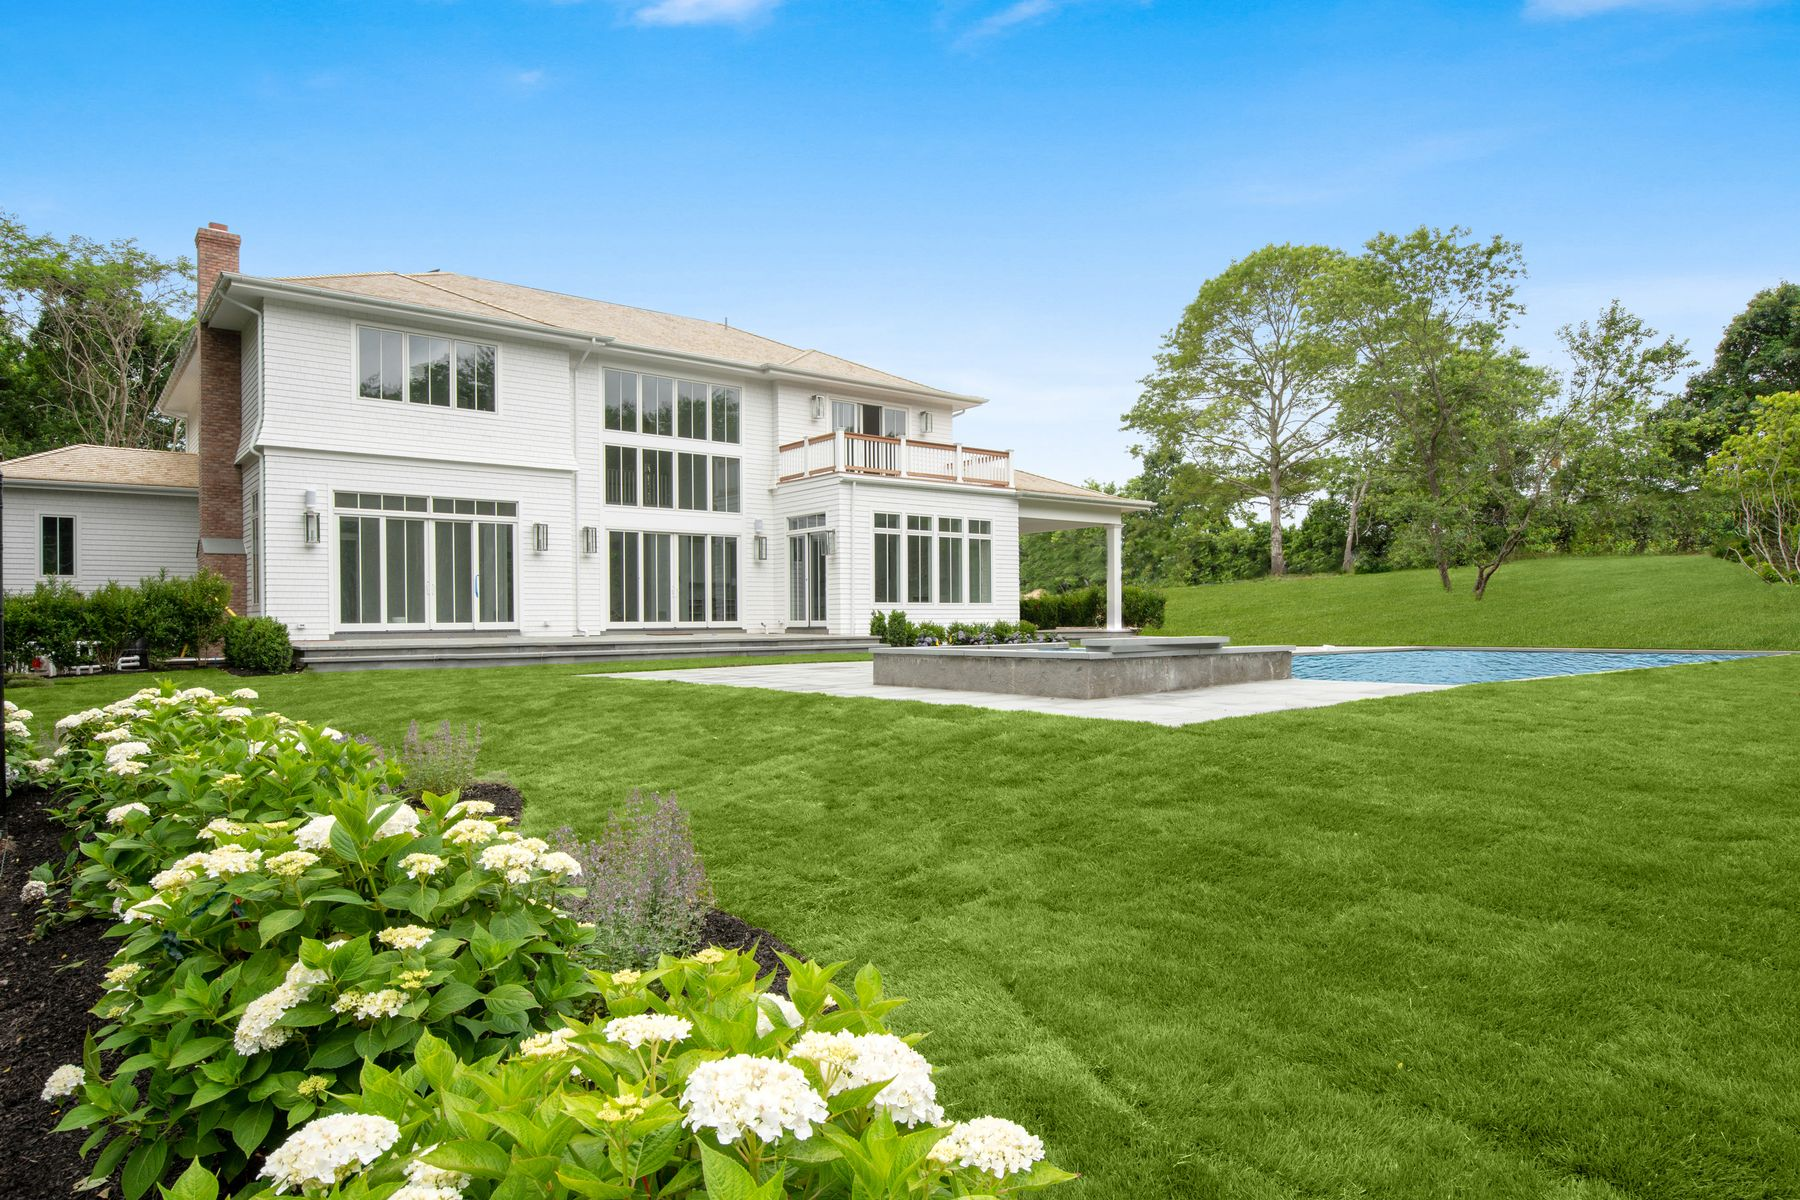 Single Family Home for Active at NEW CONSTRUCTION WITH TENNIS 2148 Scuttle Hole Road Bridgehampton, New York 11932 United States